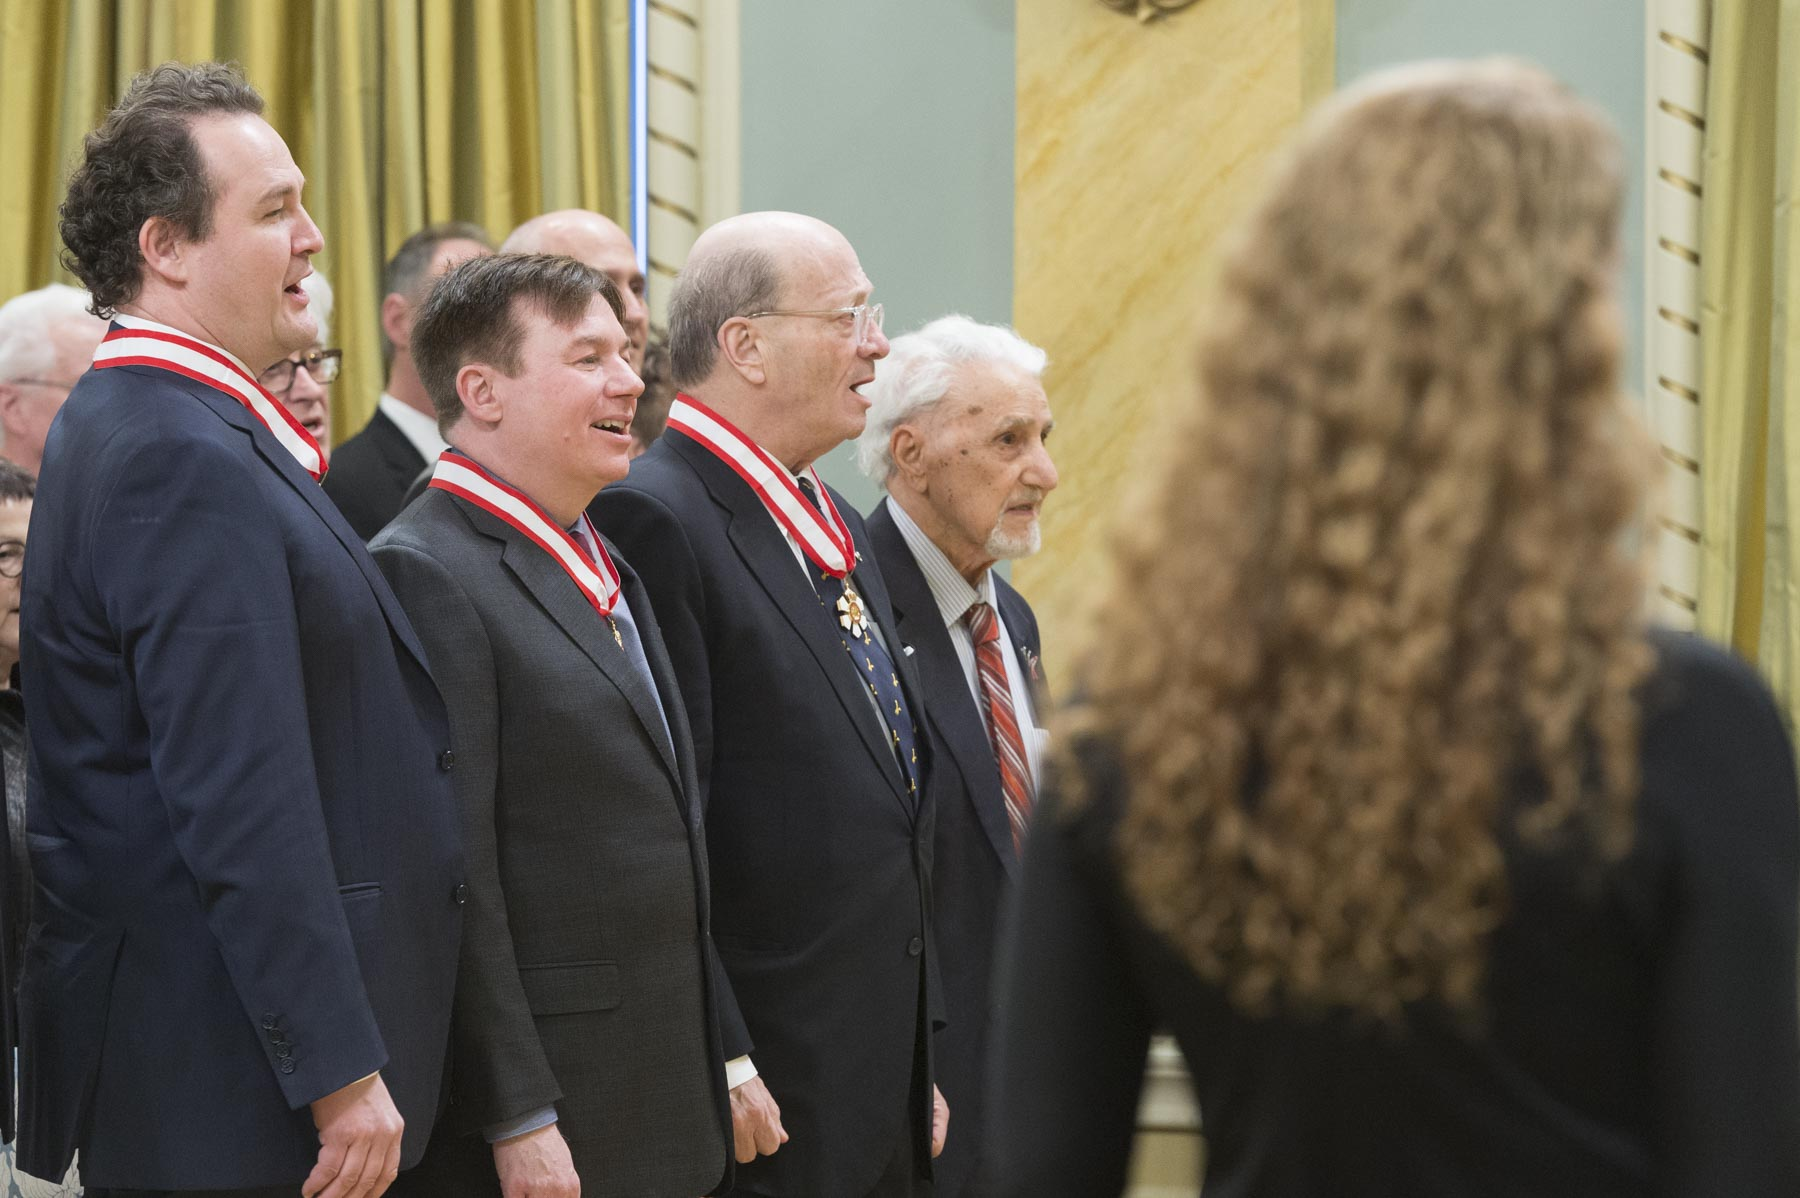 To close the ceremony, recipients and guests sang the national anthem in unison.